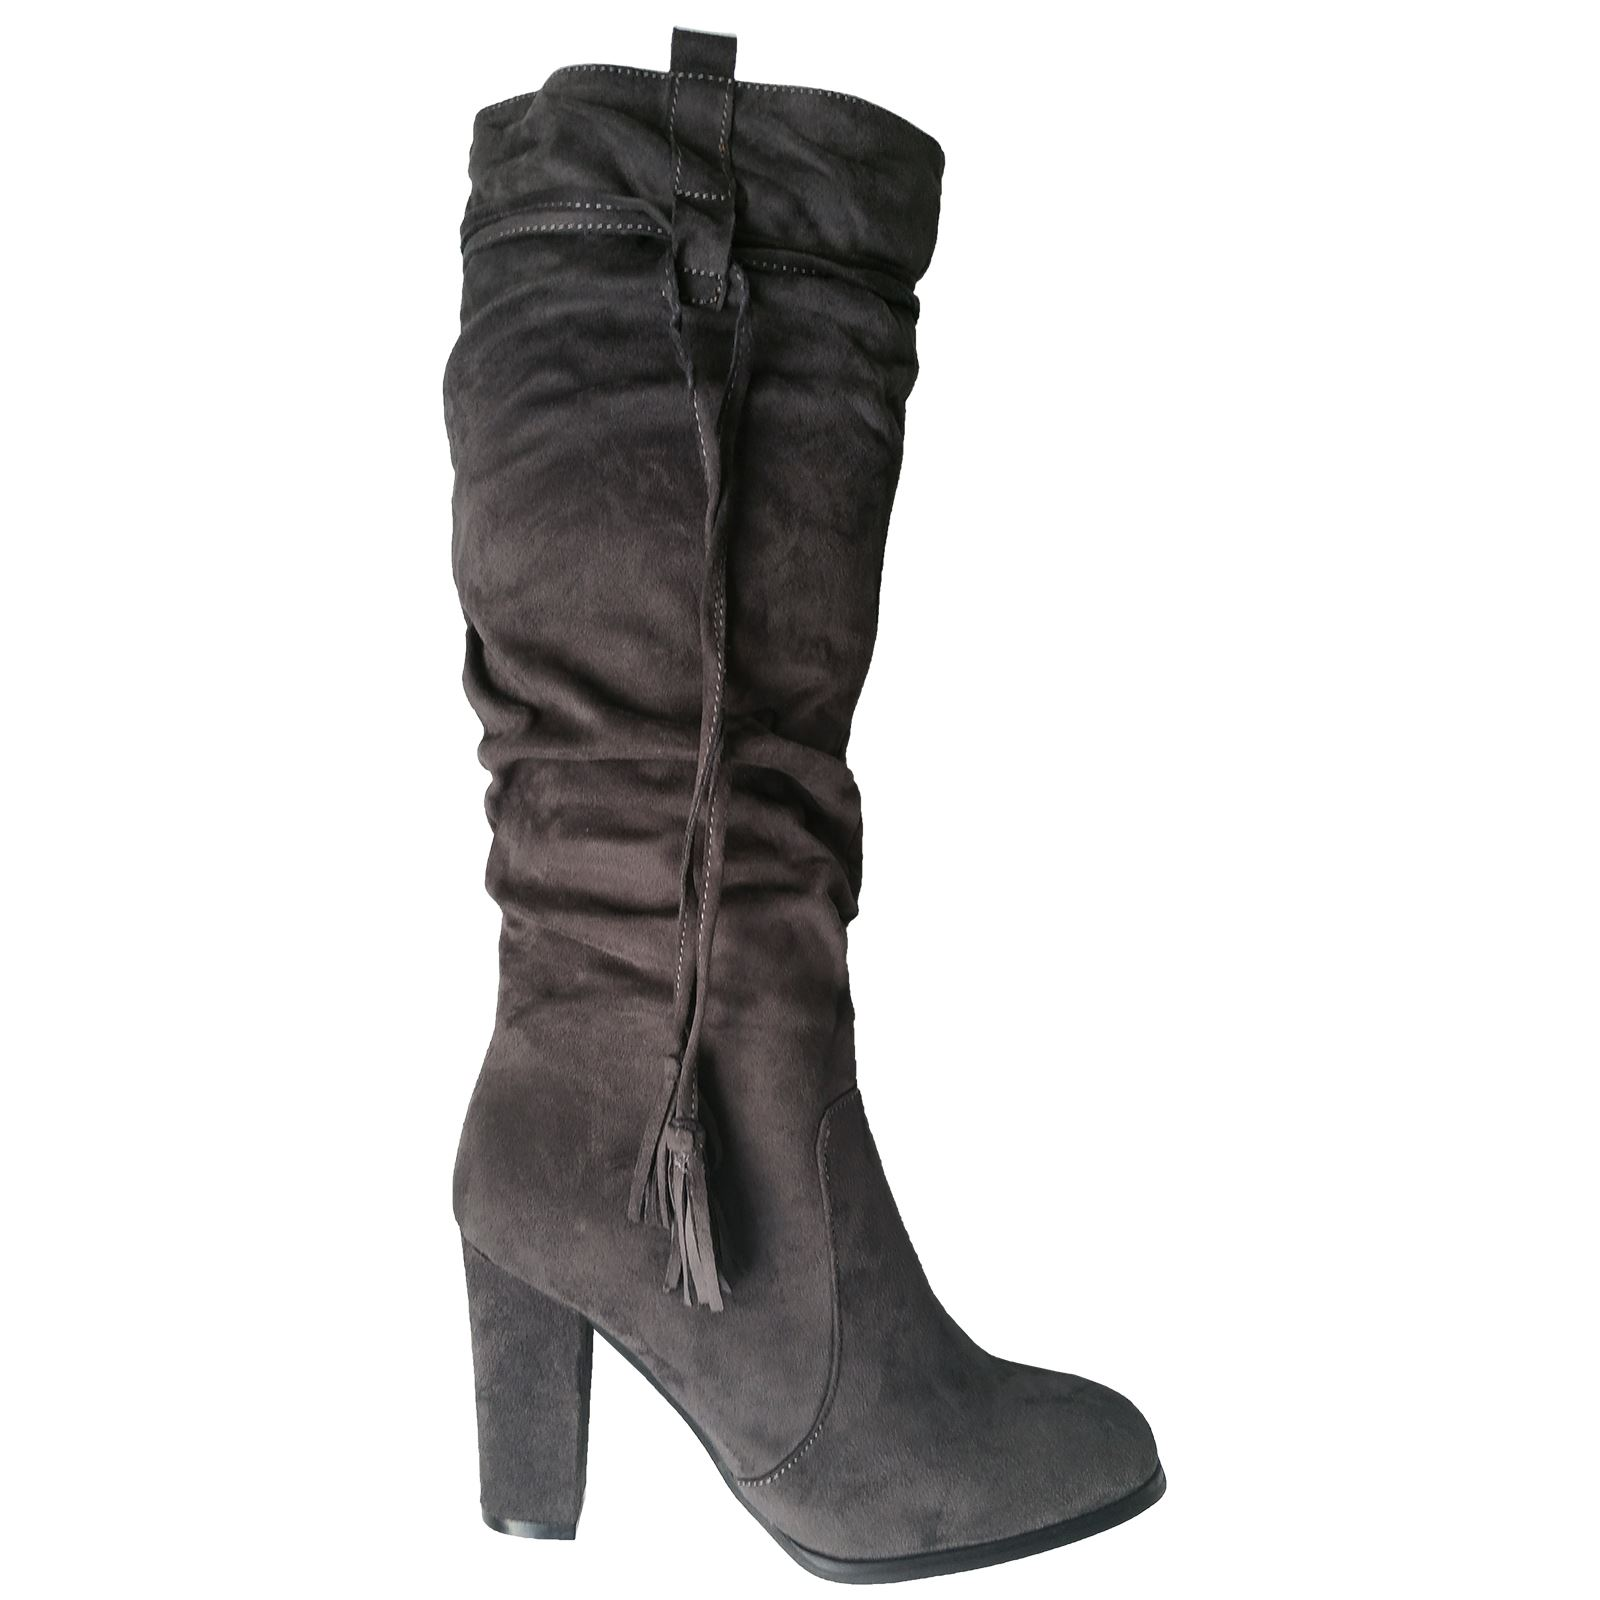 Melanie Womens Block Heel Under Knee High Boots Ladies Ruched Slouch ... 6acd36019a